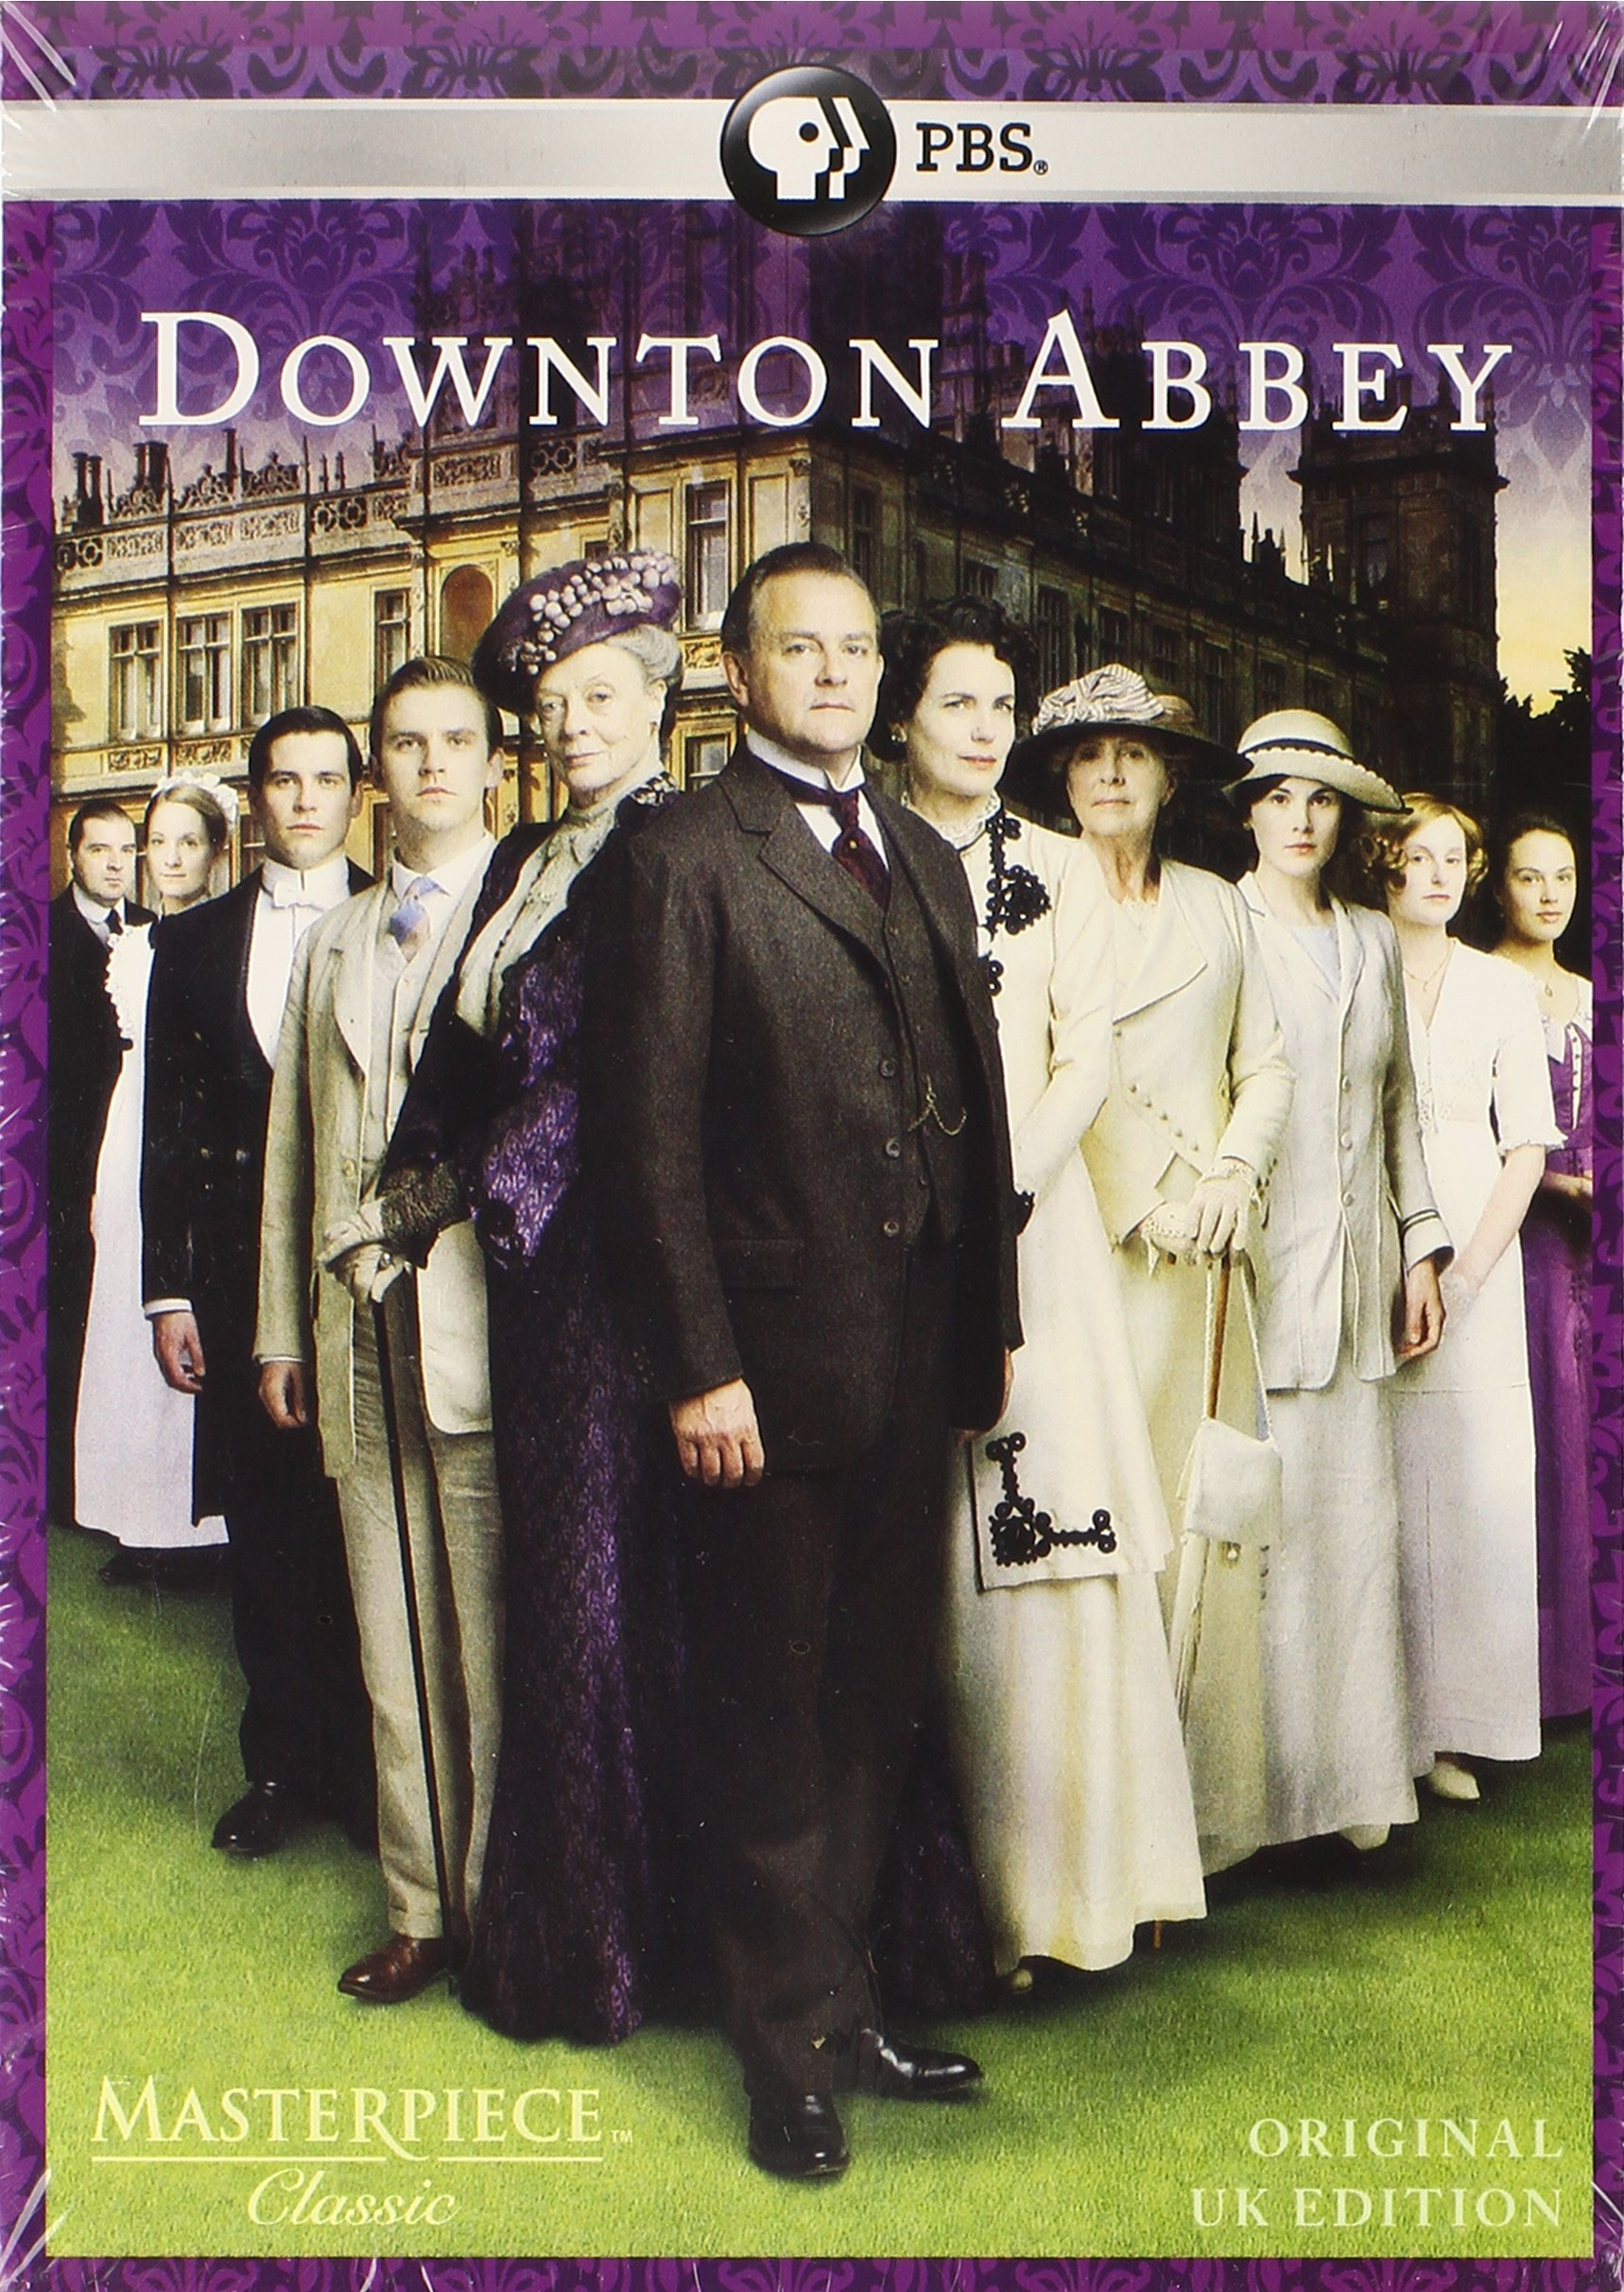 Masterpiece: Downton Abbey Complete Seasons 1, 2, & 3 DVD Set (Original U.K. Edition) by Pbs (Direct)